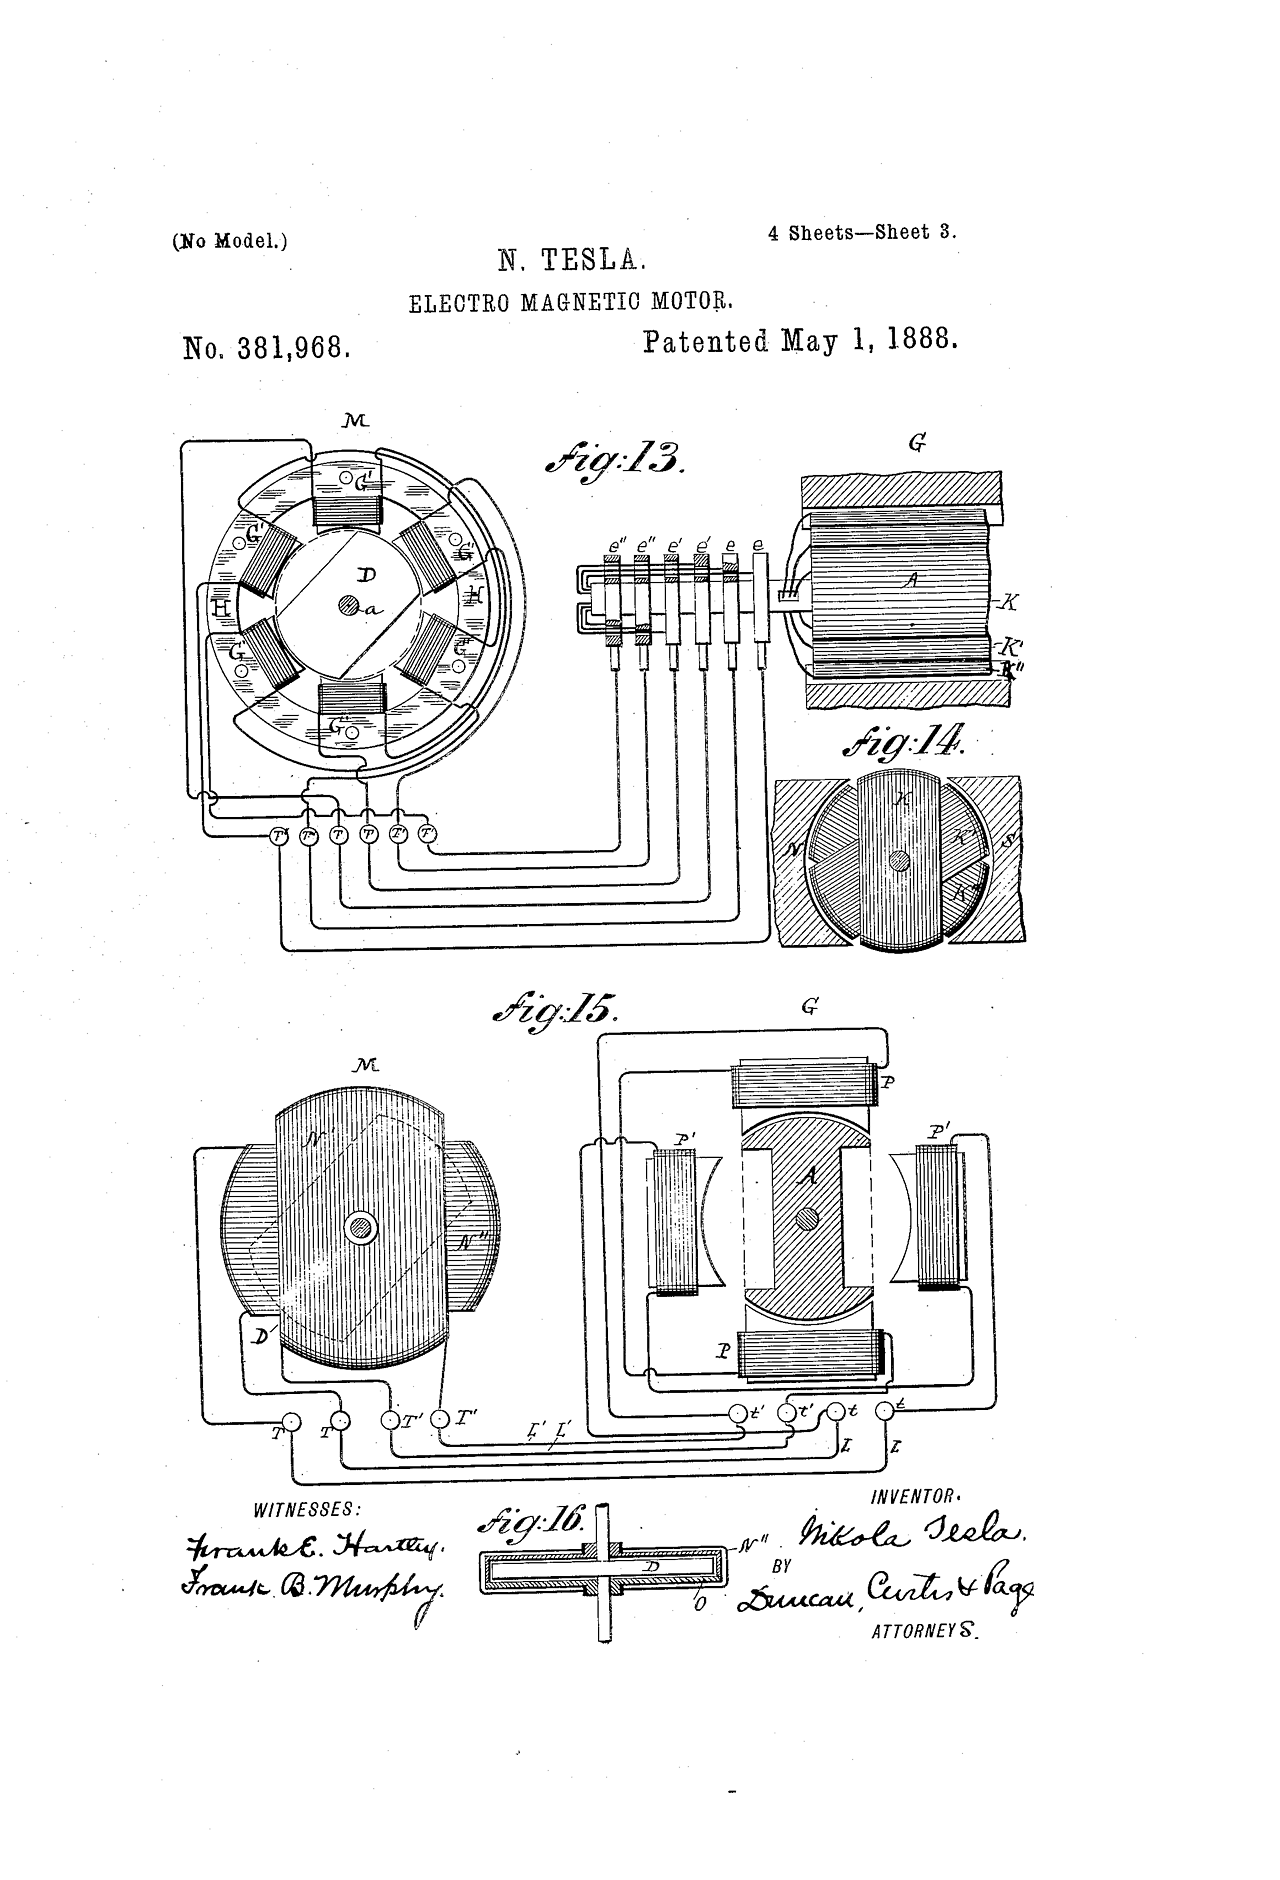 Science Visualized The Tesla Motor One Of The Most